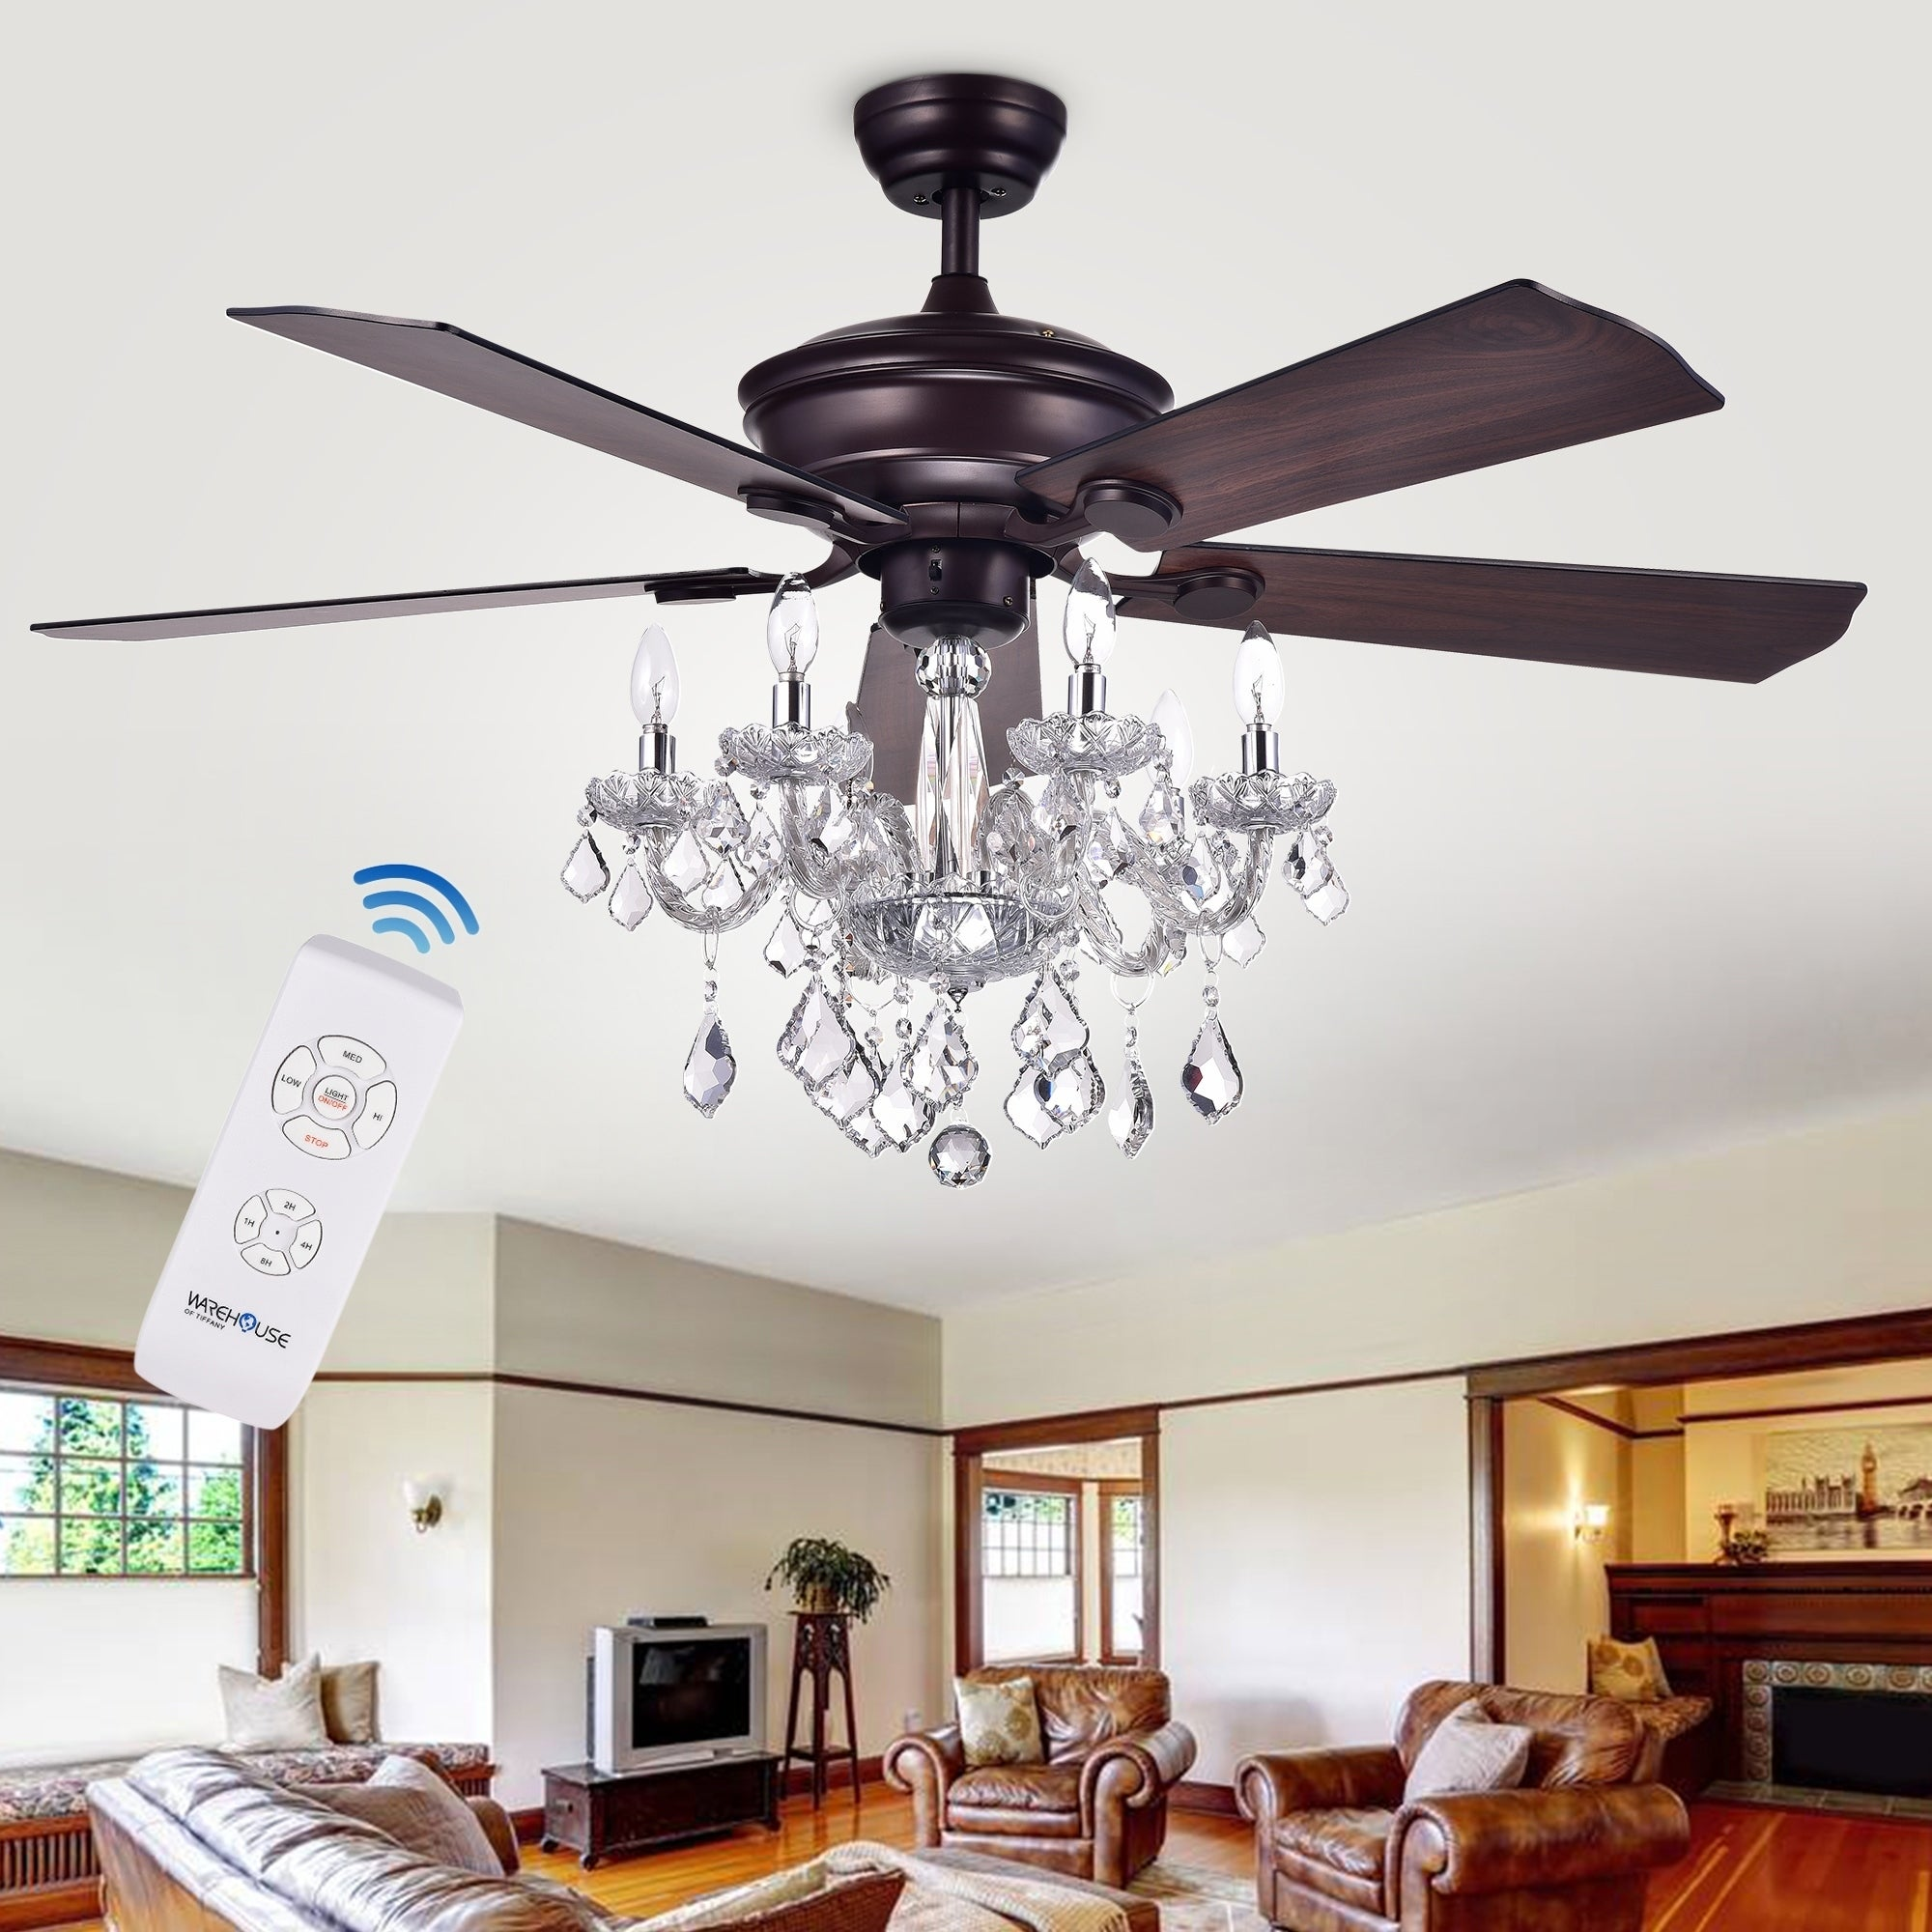 warehouse of tiffany chandelier. Warehouse Of Tiffany Havorand 52-inch 5-blade Ceiling Fan With Crystal Chandelier (Optional Remote) - Brown Free Shipping Today Overstock 22932069 C